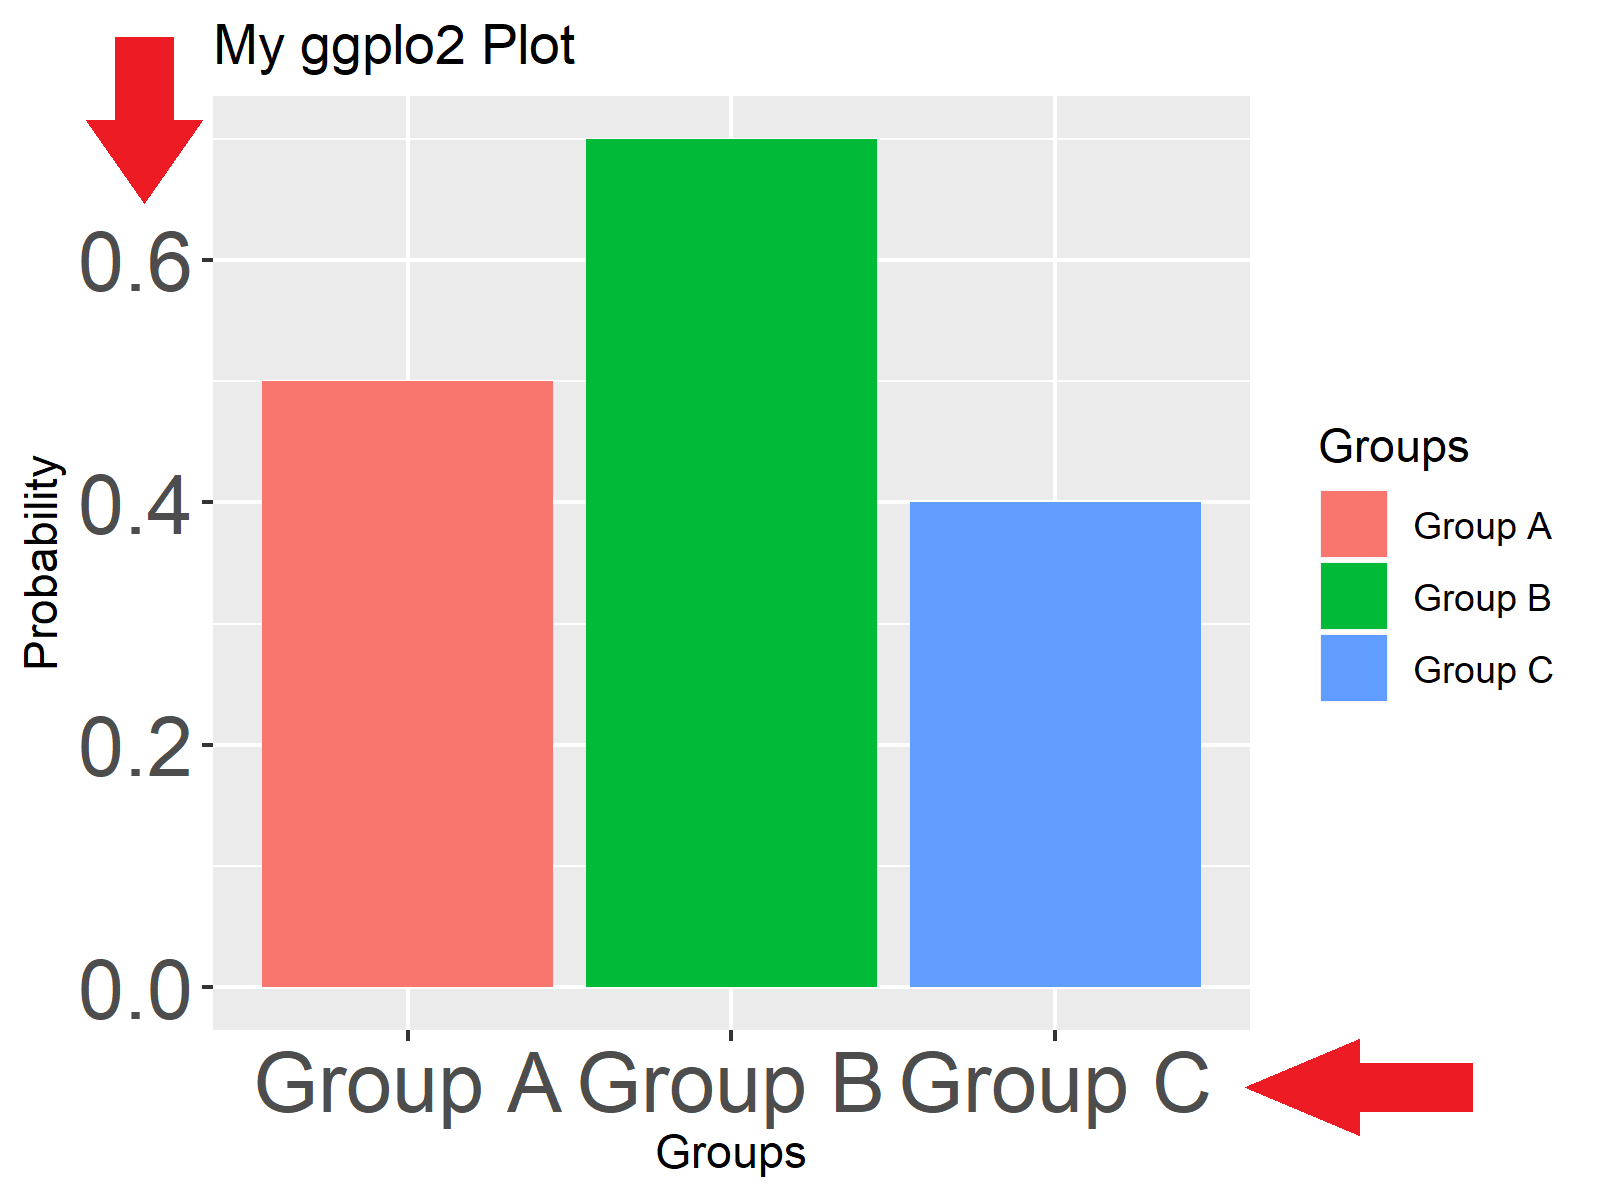 r ggplot2 plot font size of axis text